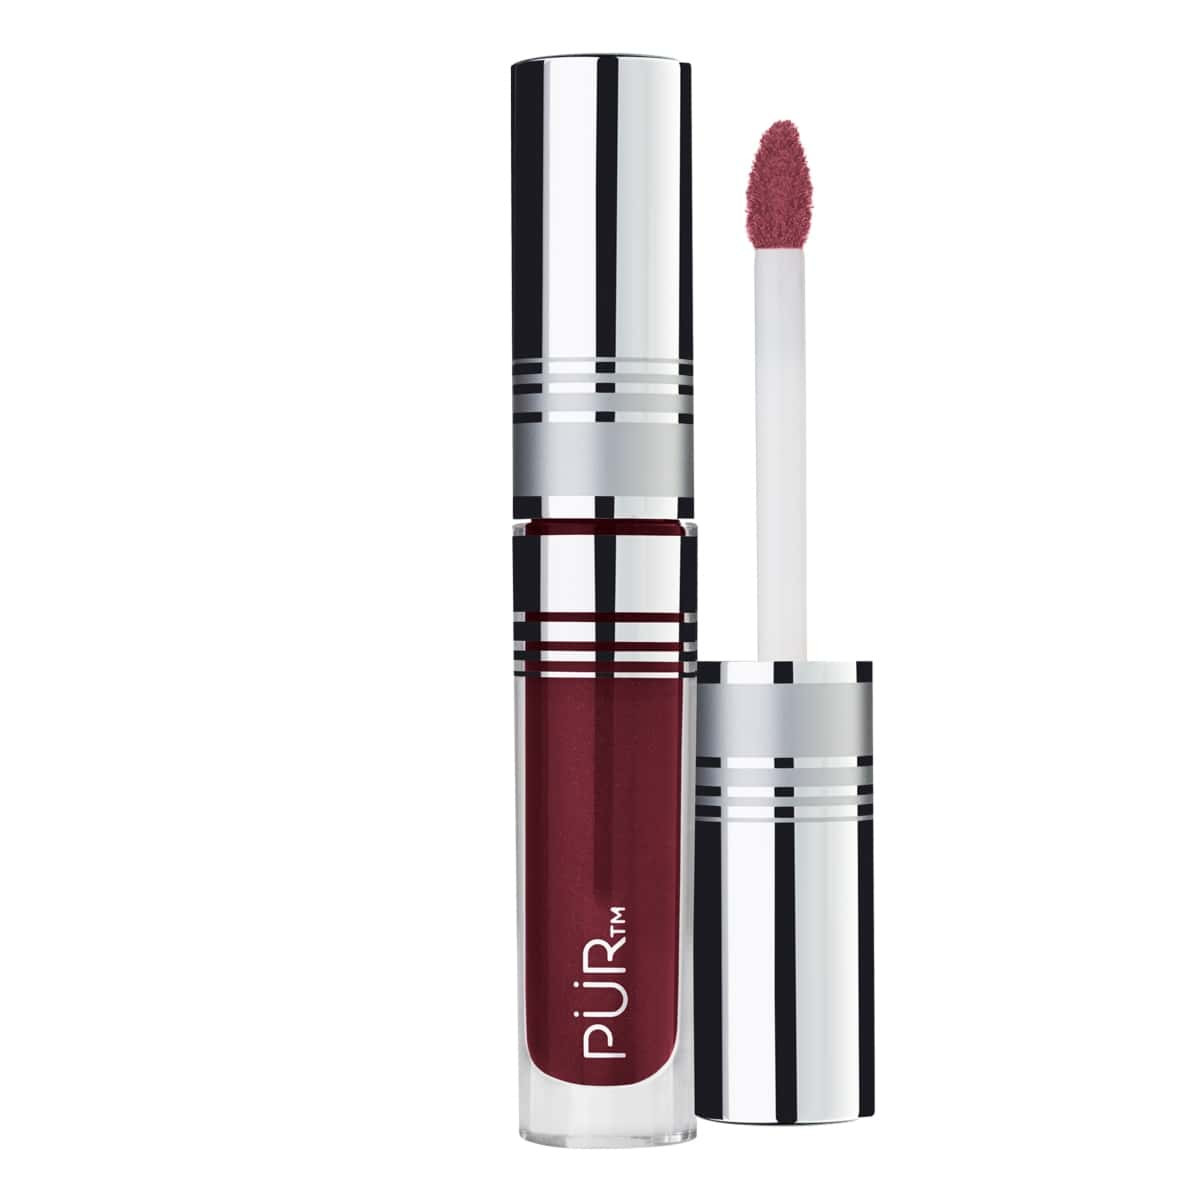 Chrome Glaze High-Shine Lip Gloss in Rebel